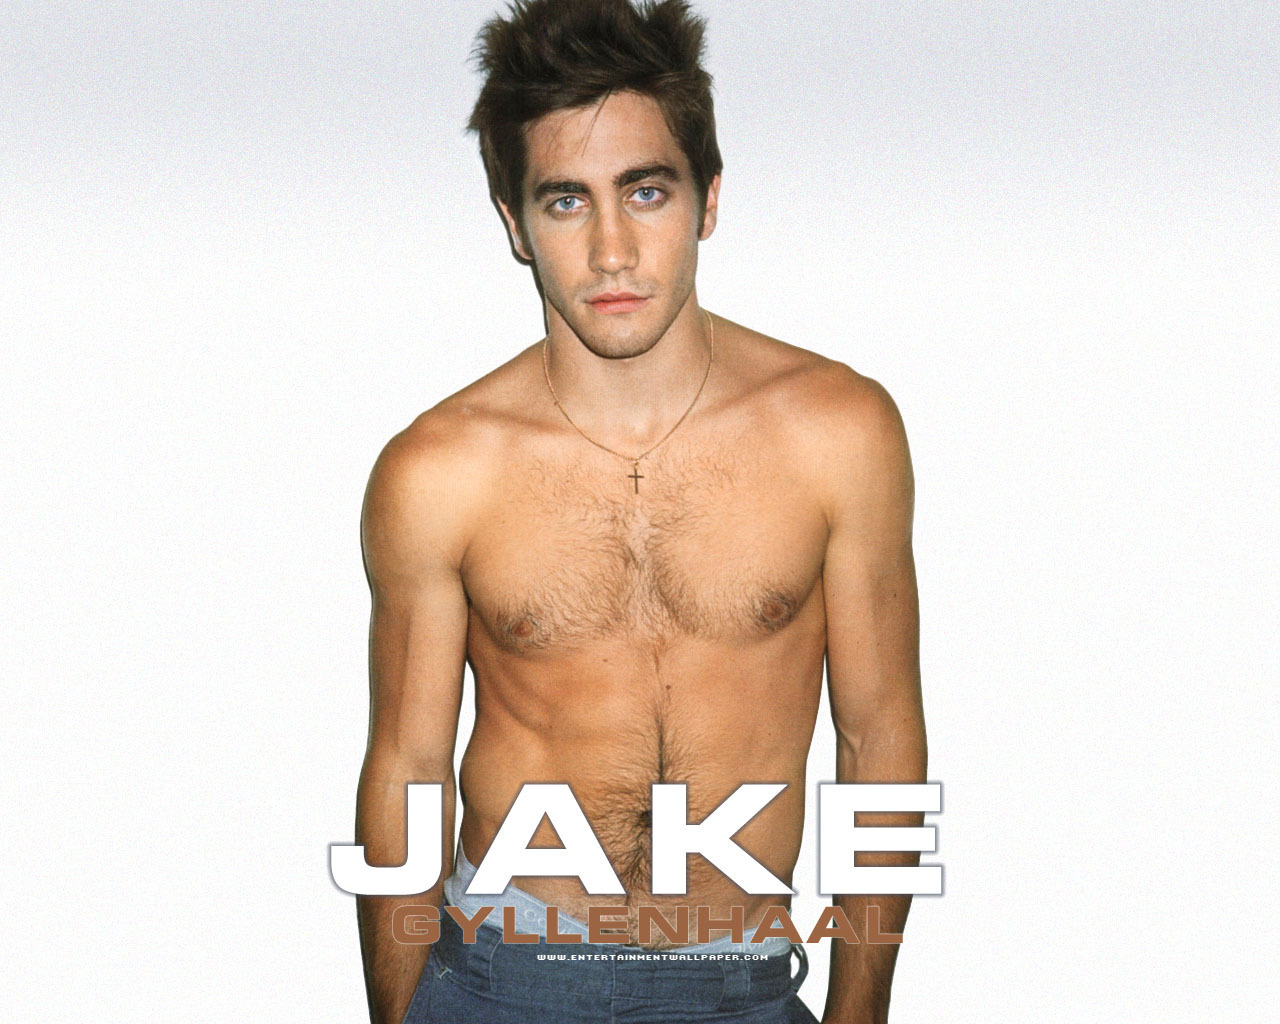 Jake Gyllenhaal - Wallpaper Actress